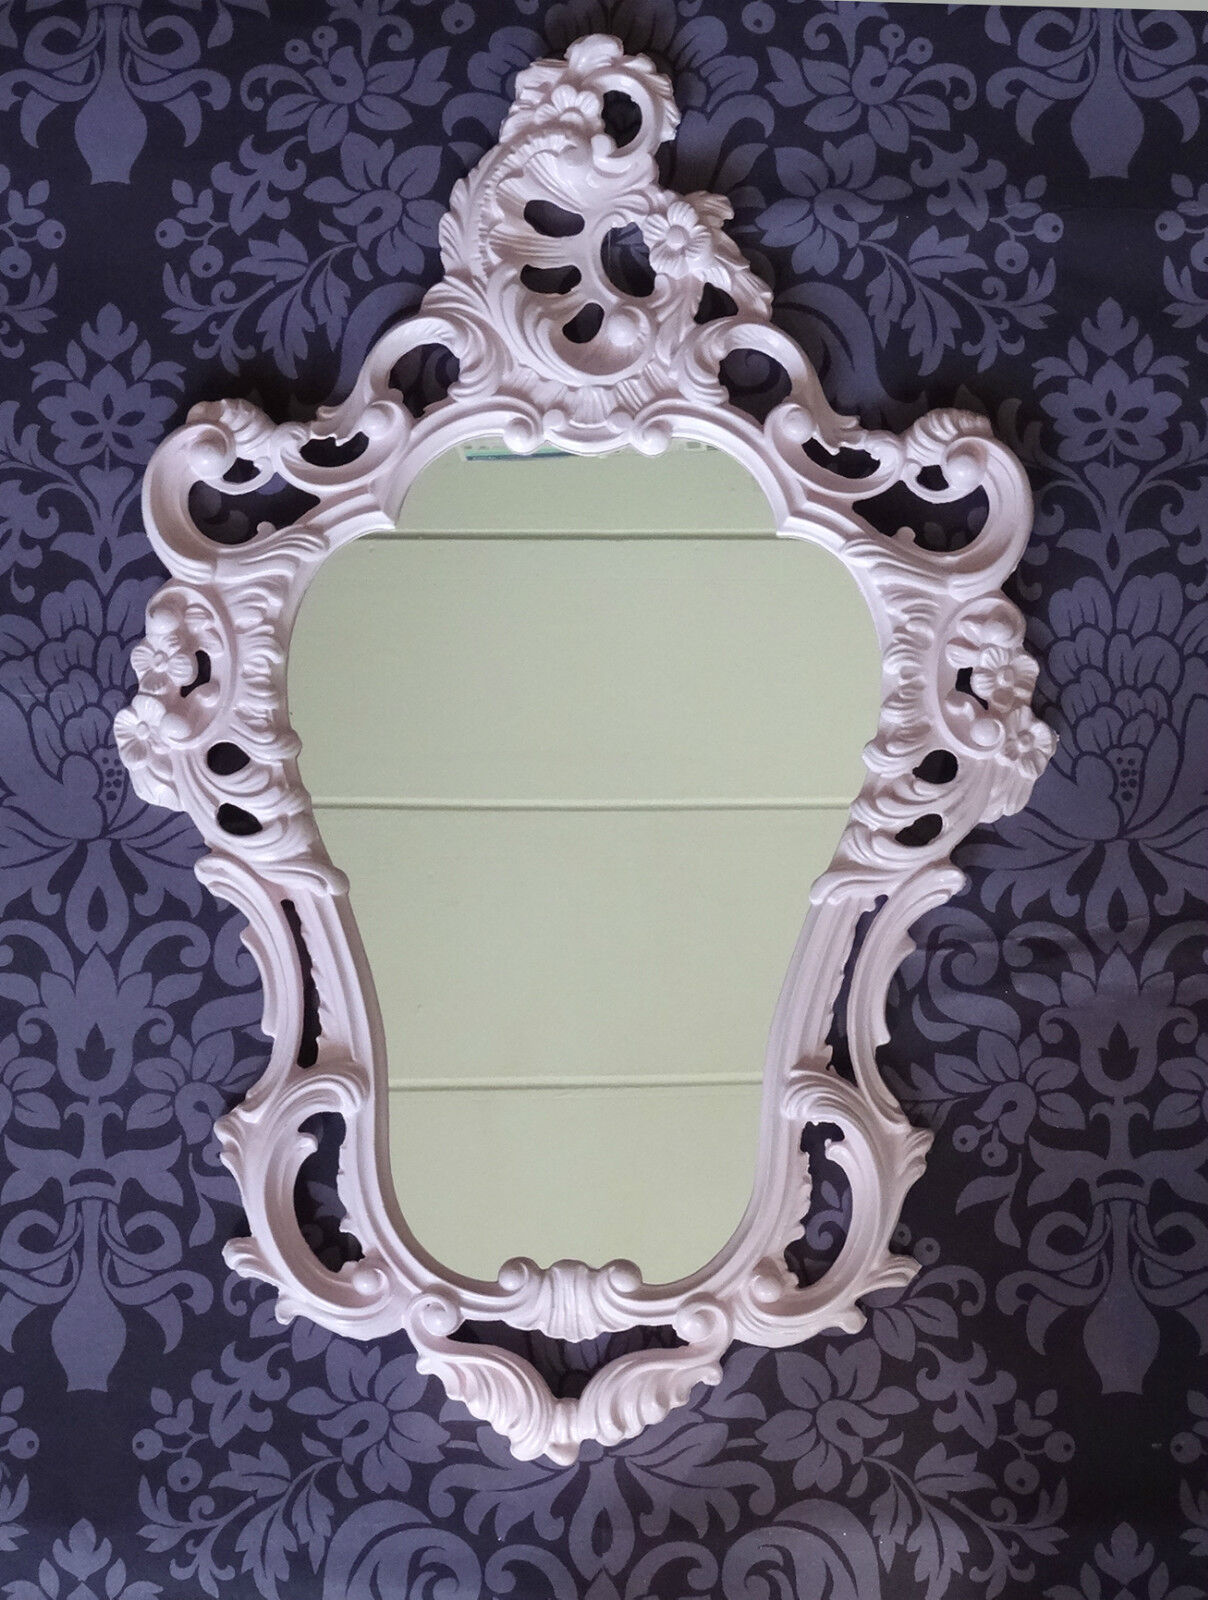 exclusive wall mirror rose pink baroque reproduction antique 50x76 deco 118 ebay. Black Bedroom Furniture Sets. Home Design Ideas